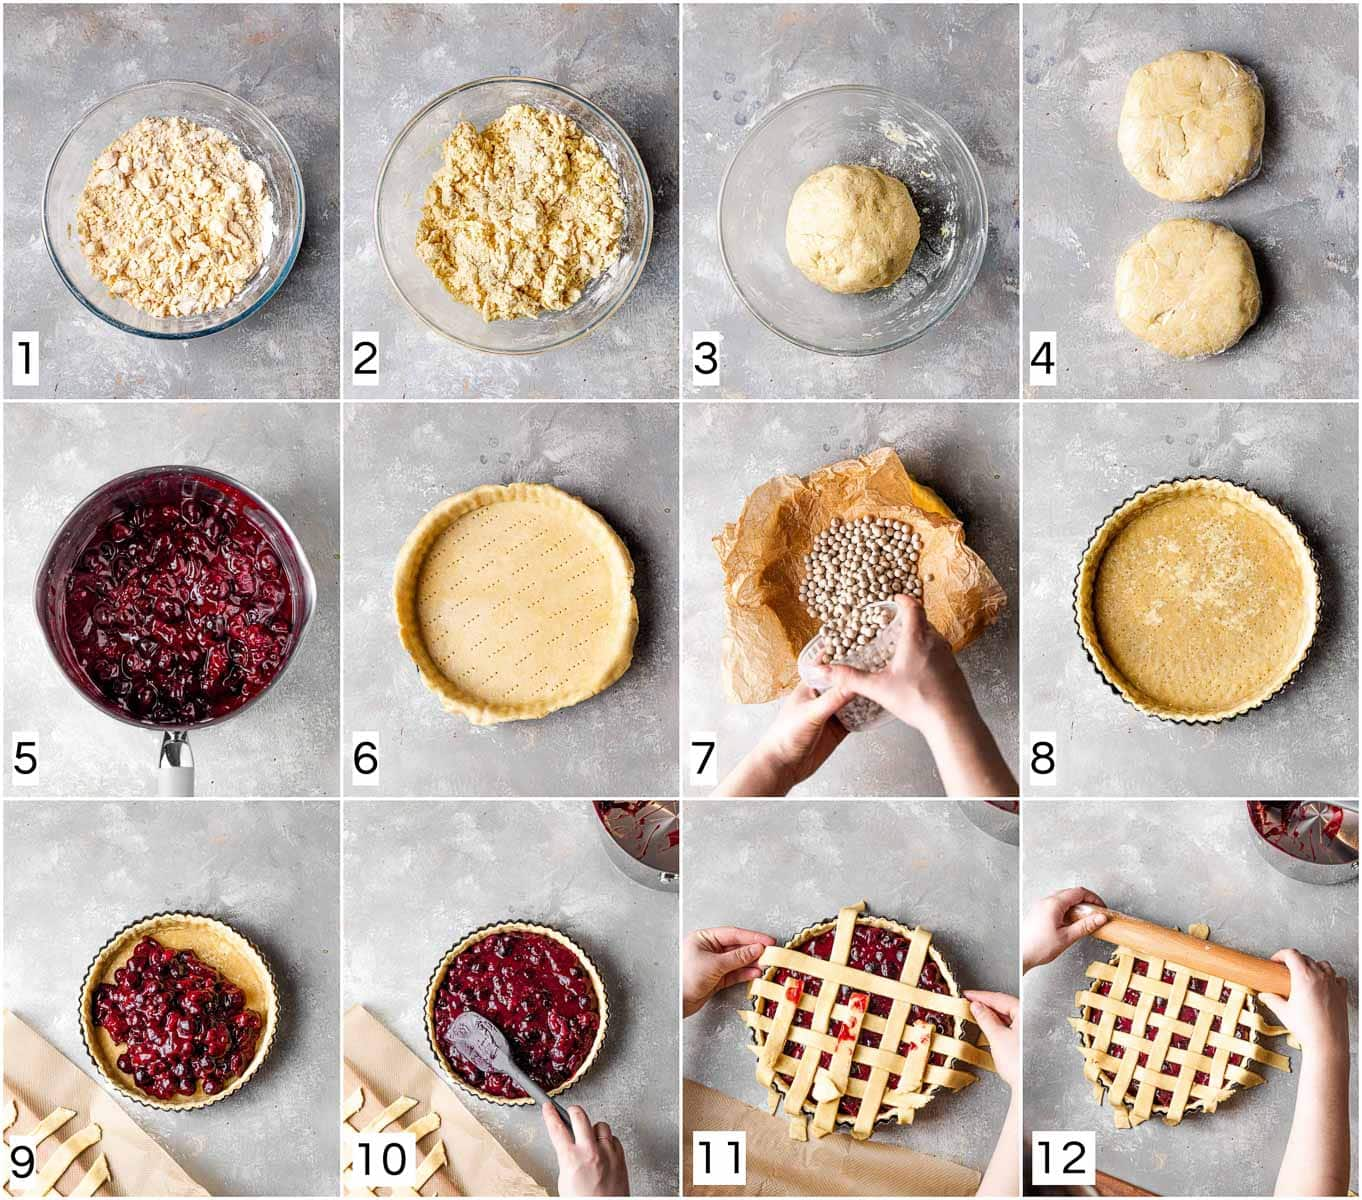 A collage of 12 images showing 12 steps in making cherry pie